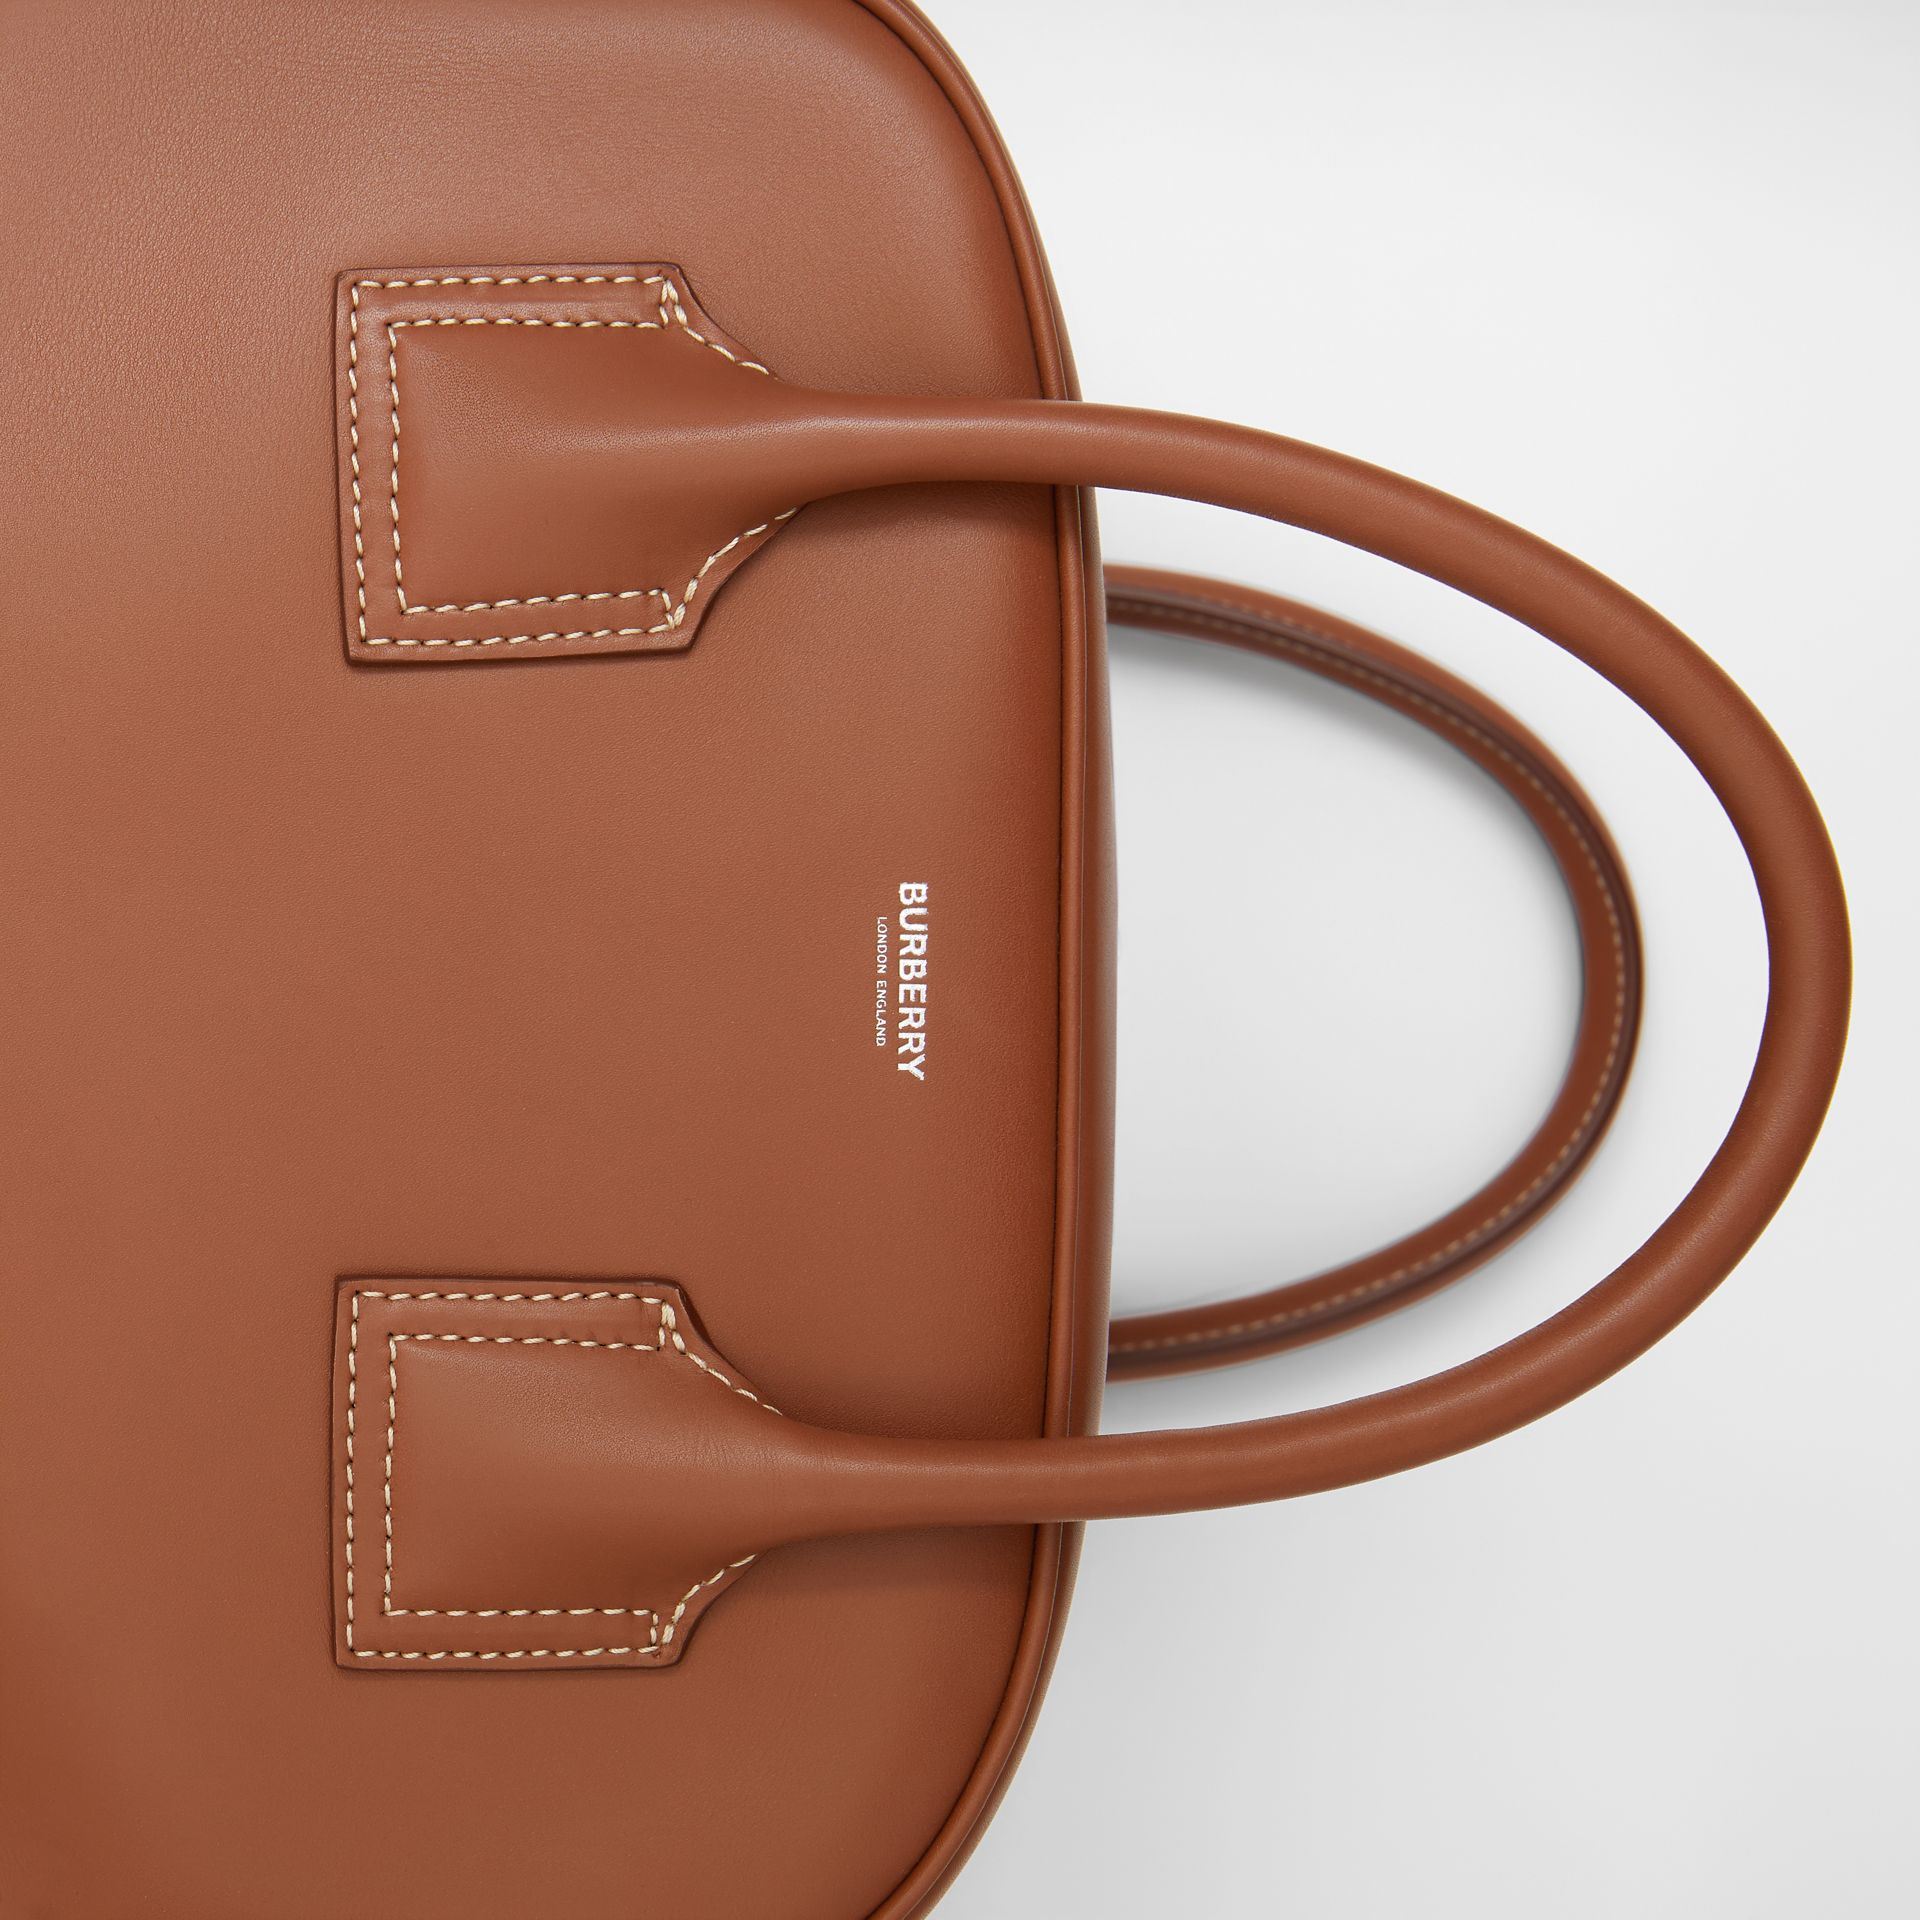 Medium Leather Cube Bag in Malt Brown - Women | Burberry Canada - gallery image 1